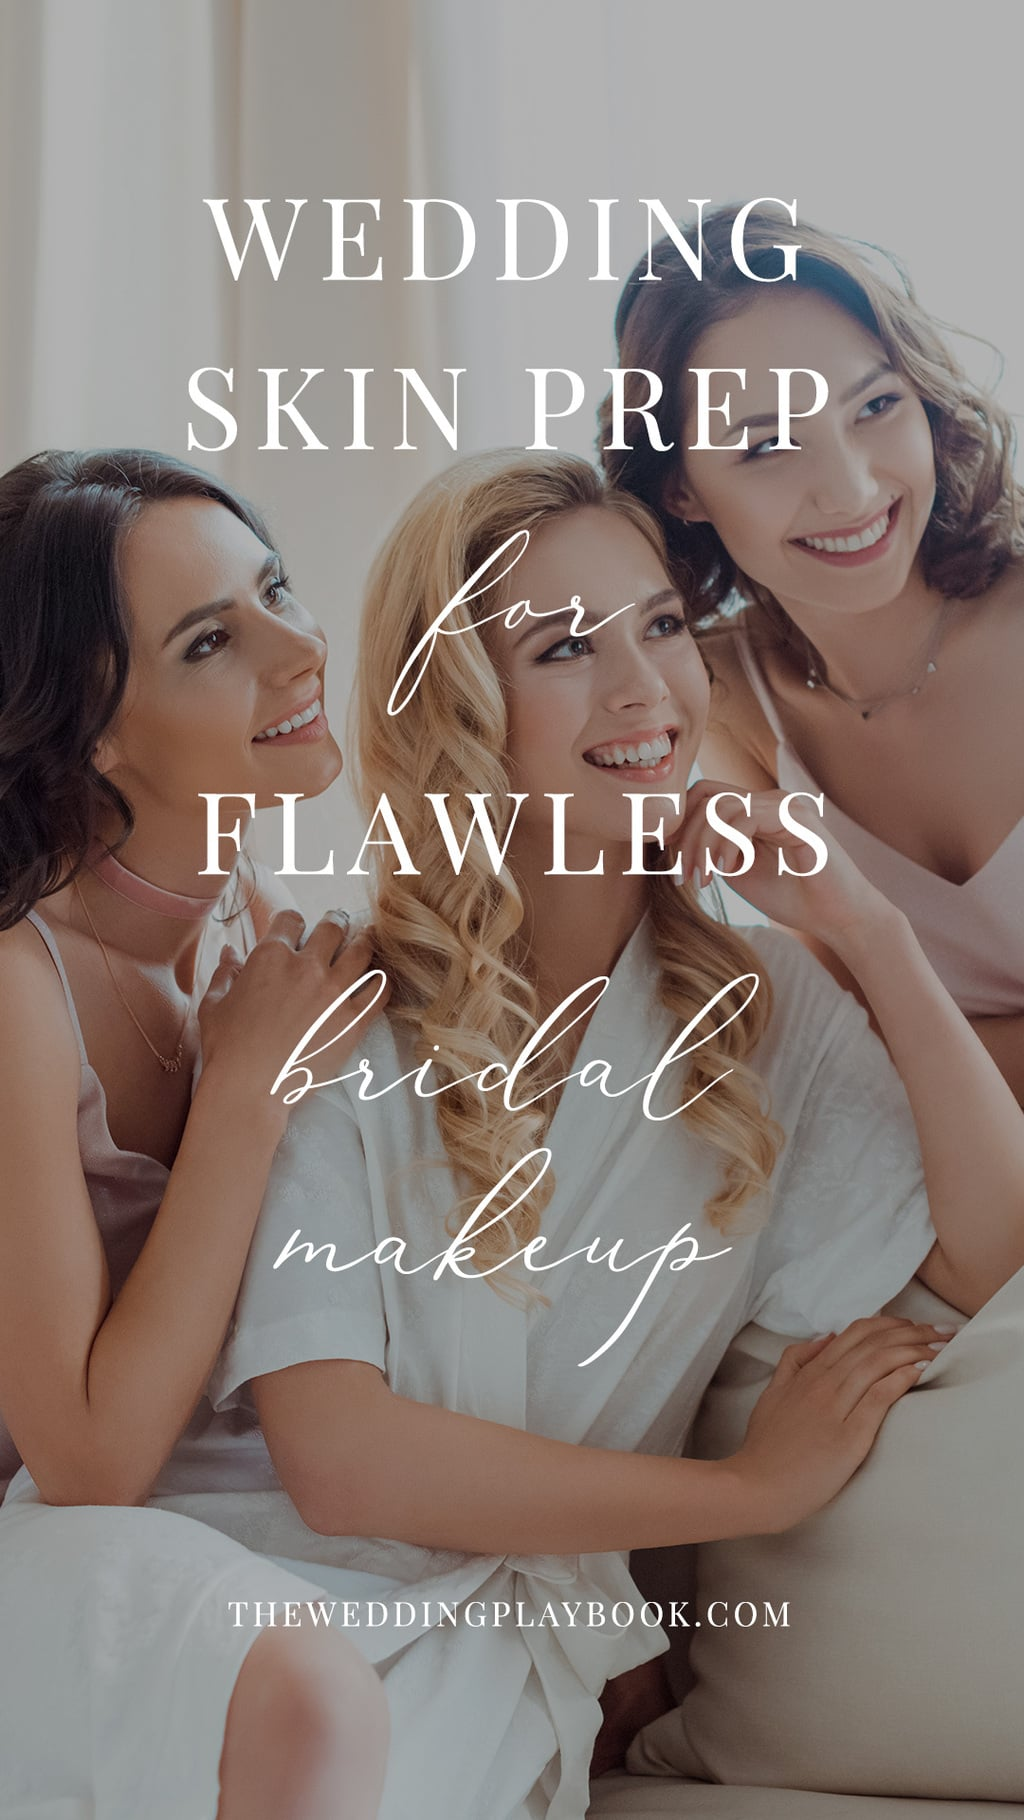 Wedding Skin Prep Tips for Flawless Bridal Makeup